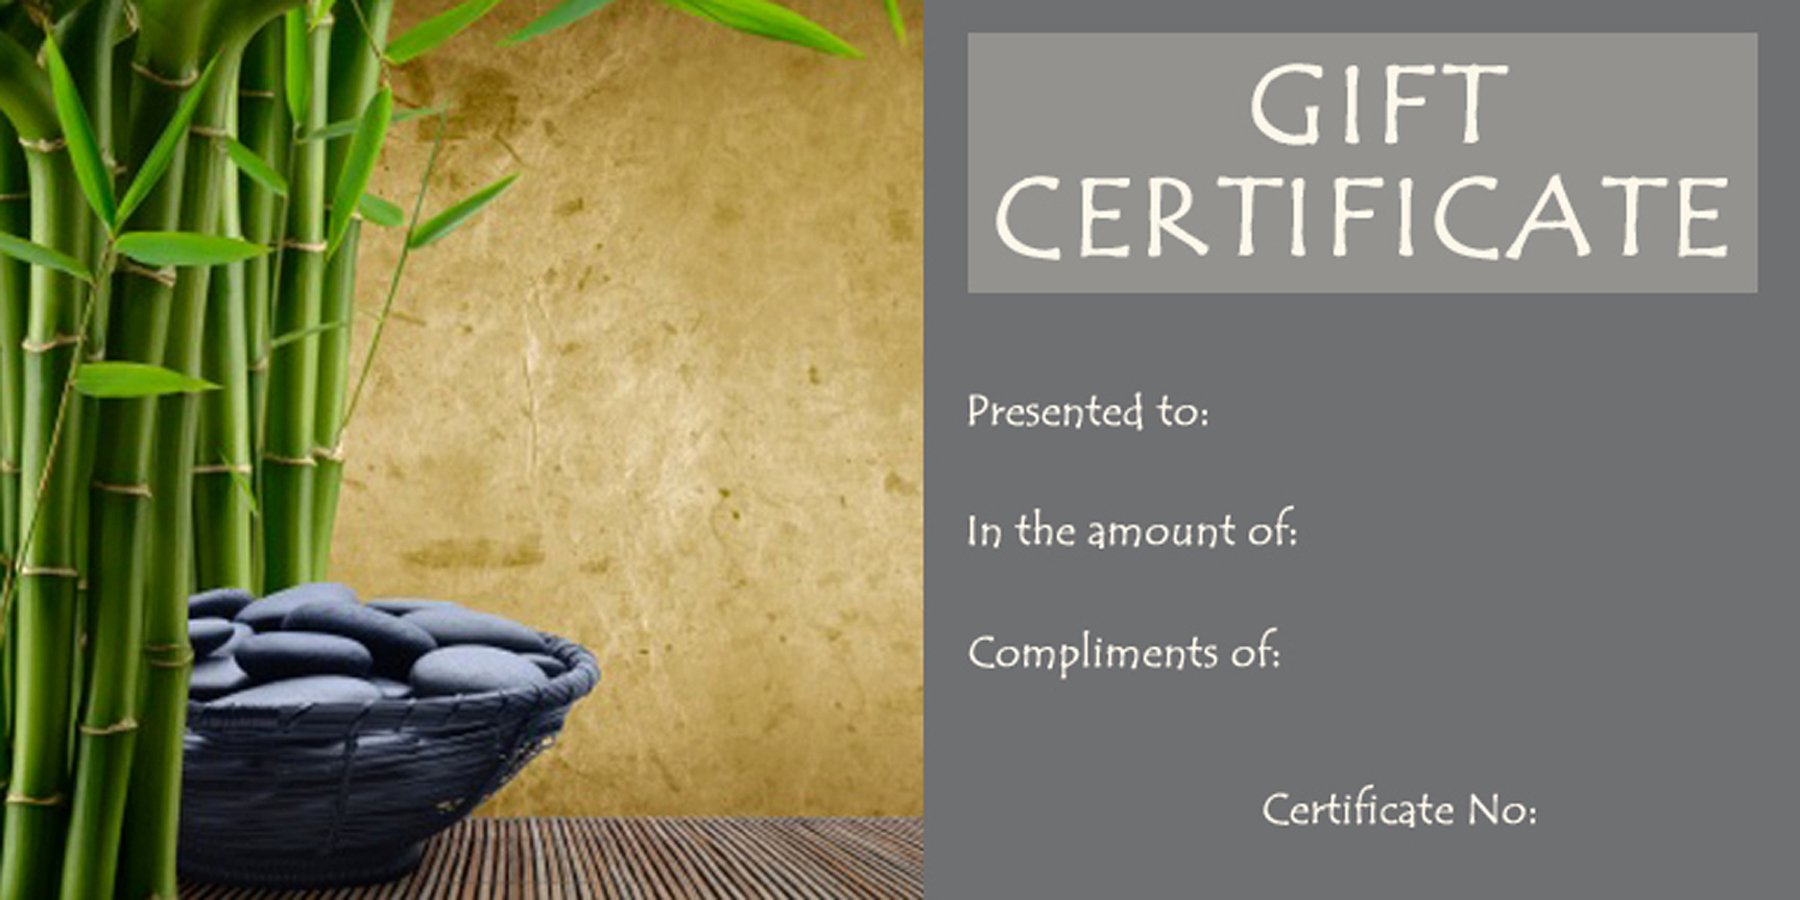 Salon Gift Certificate Template New Psychic Readings asheville Psychic Pet Psychic